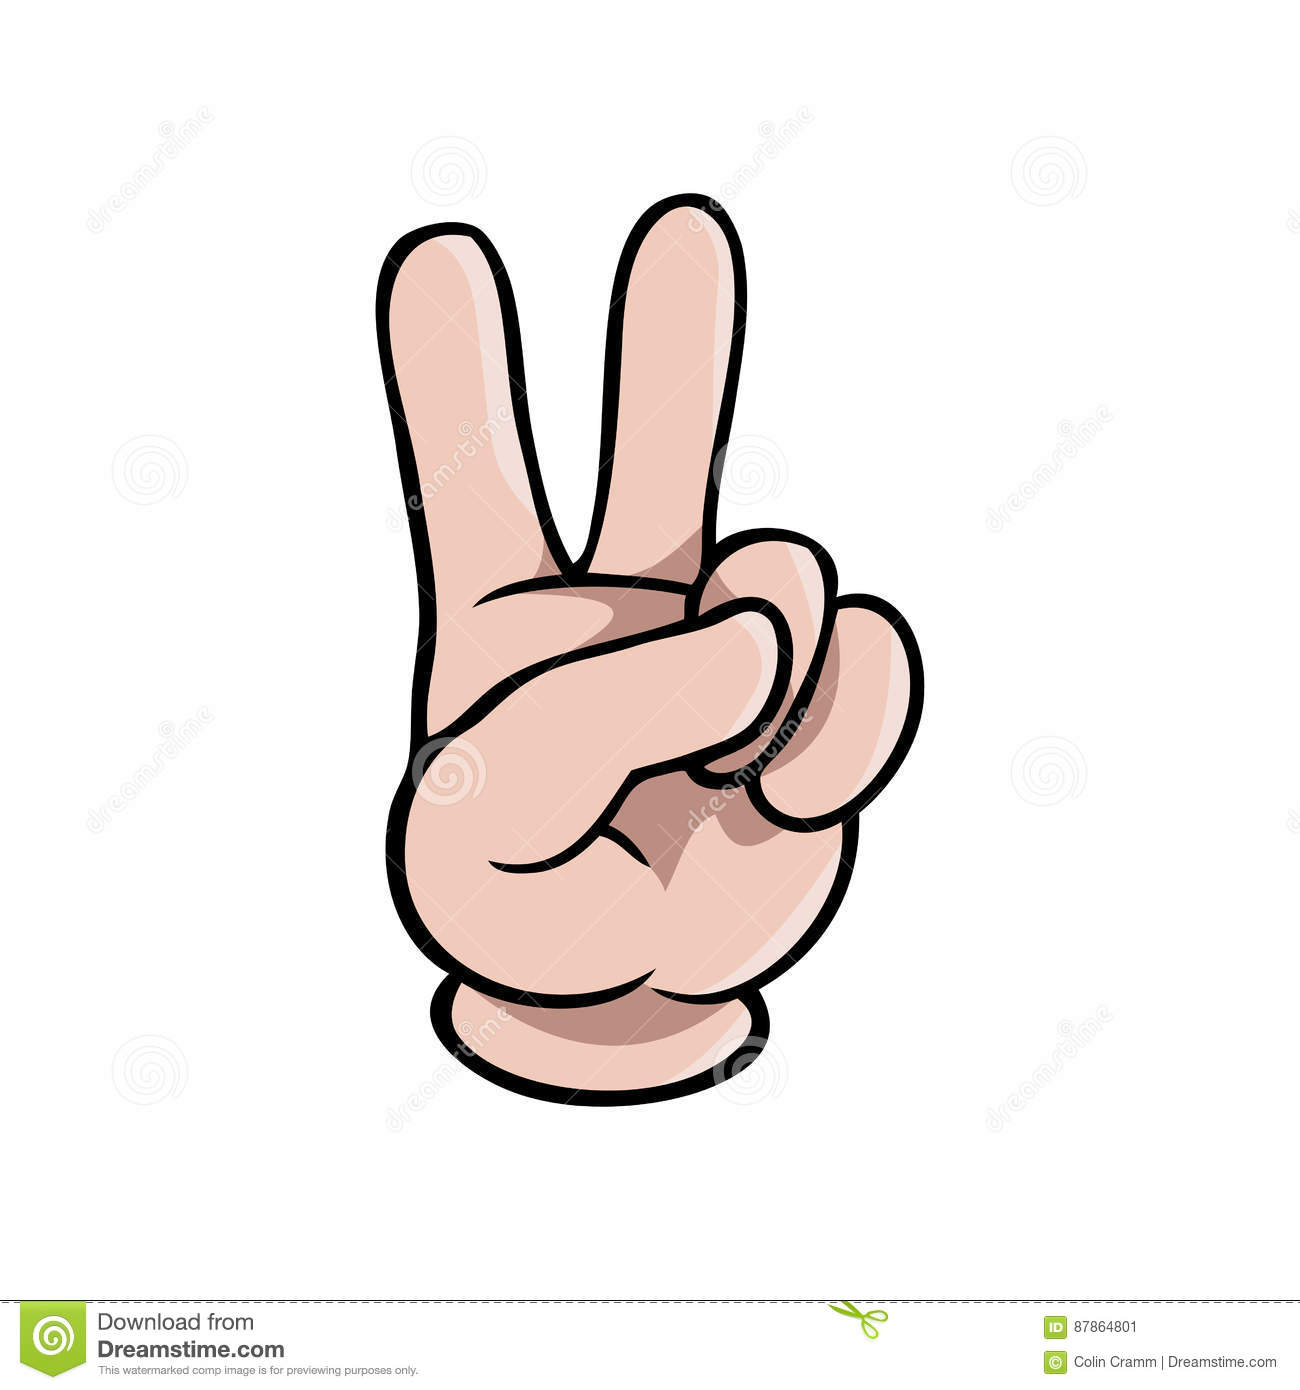 Human Cartoon Hand Showing Two Fingers Stock Vector Illustration